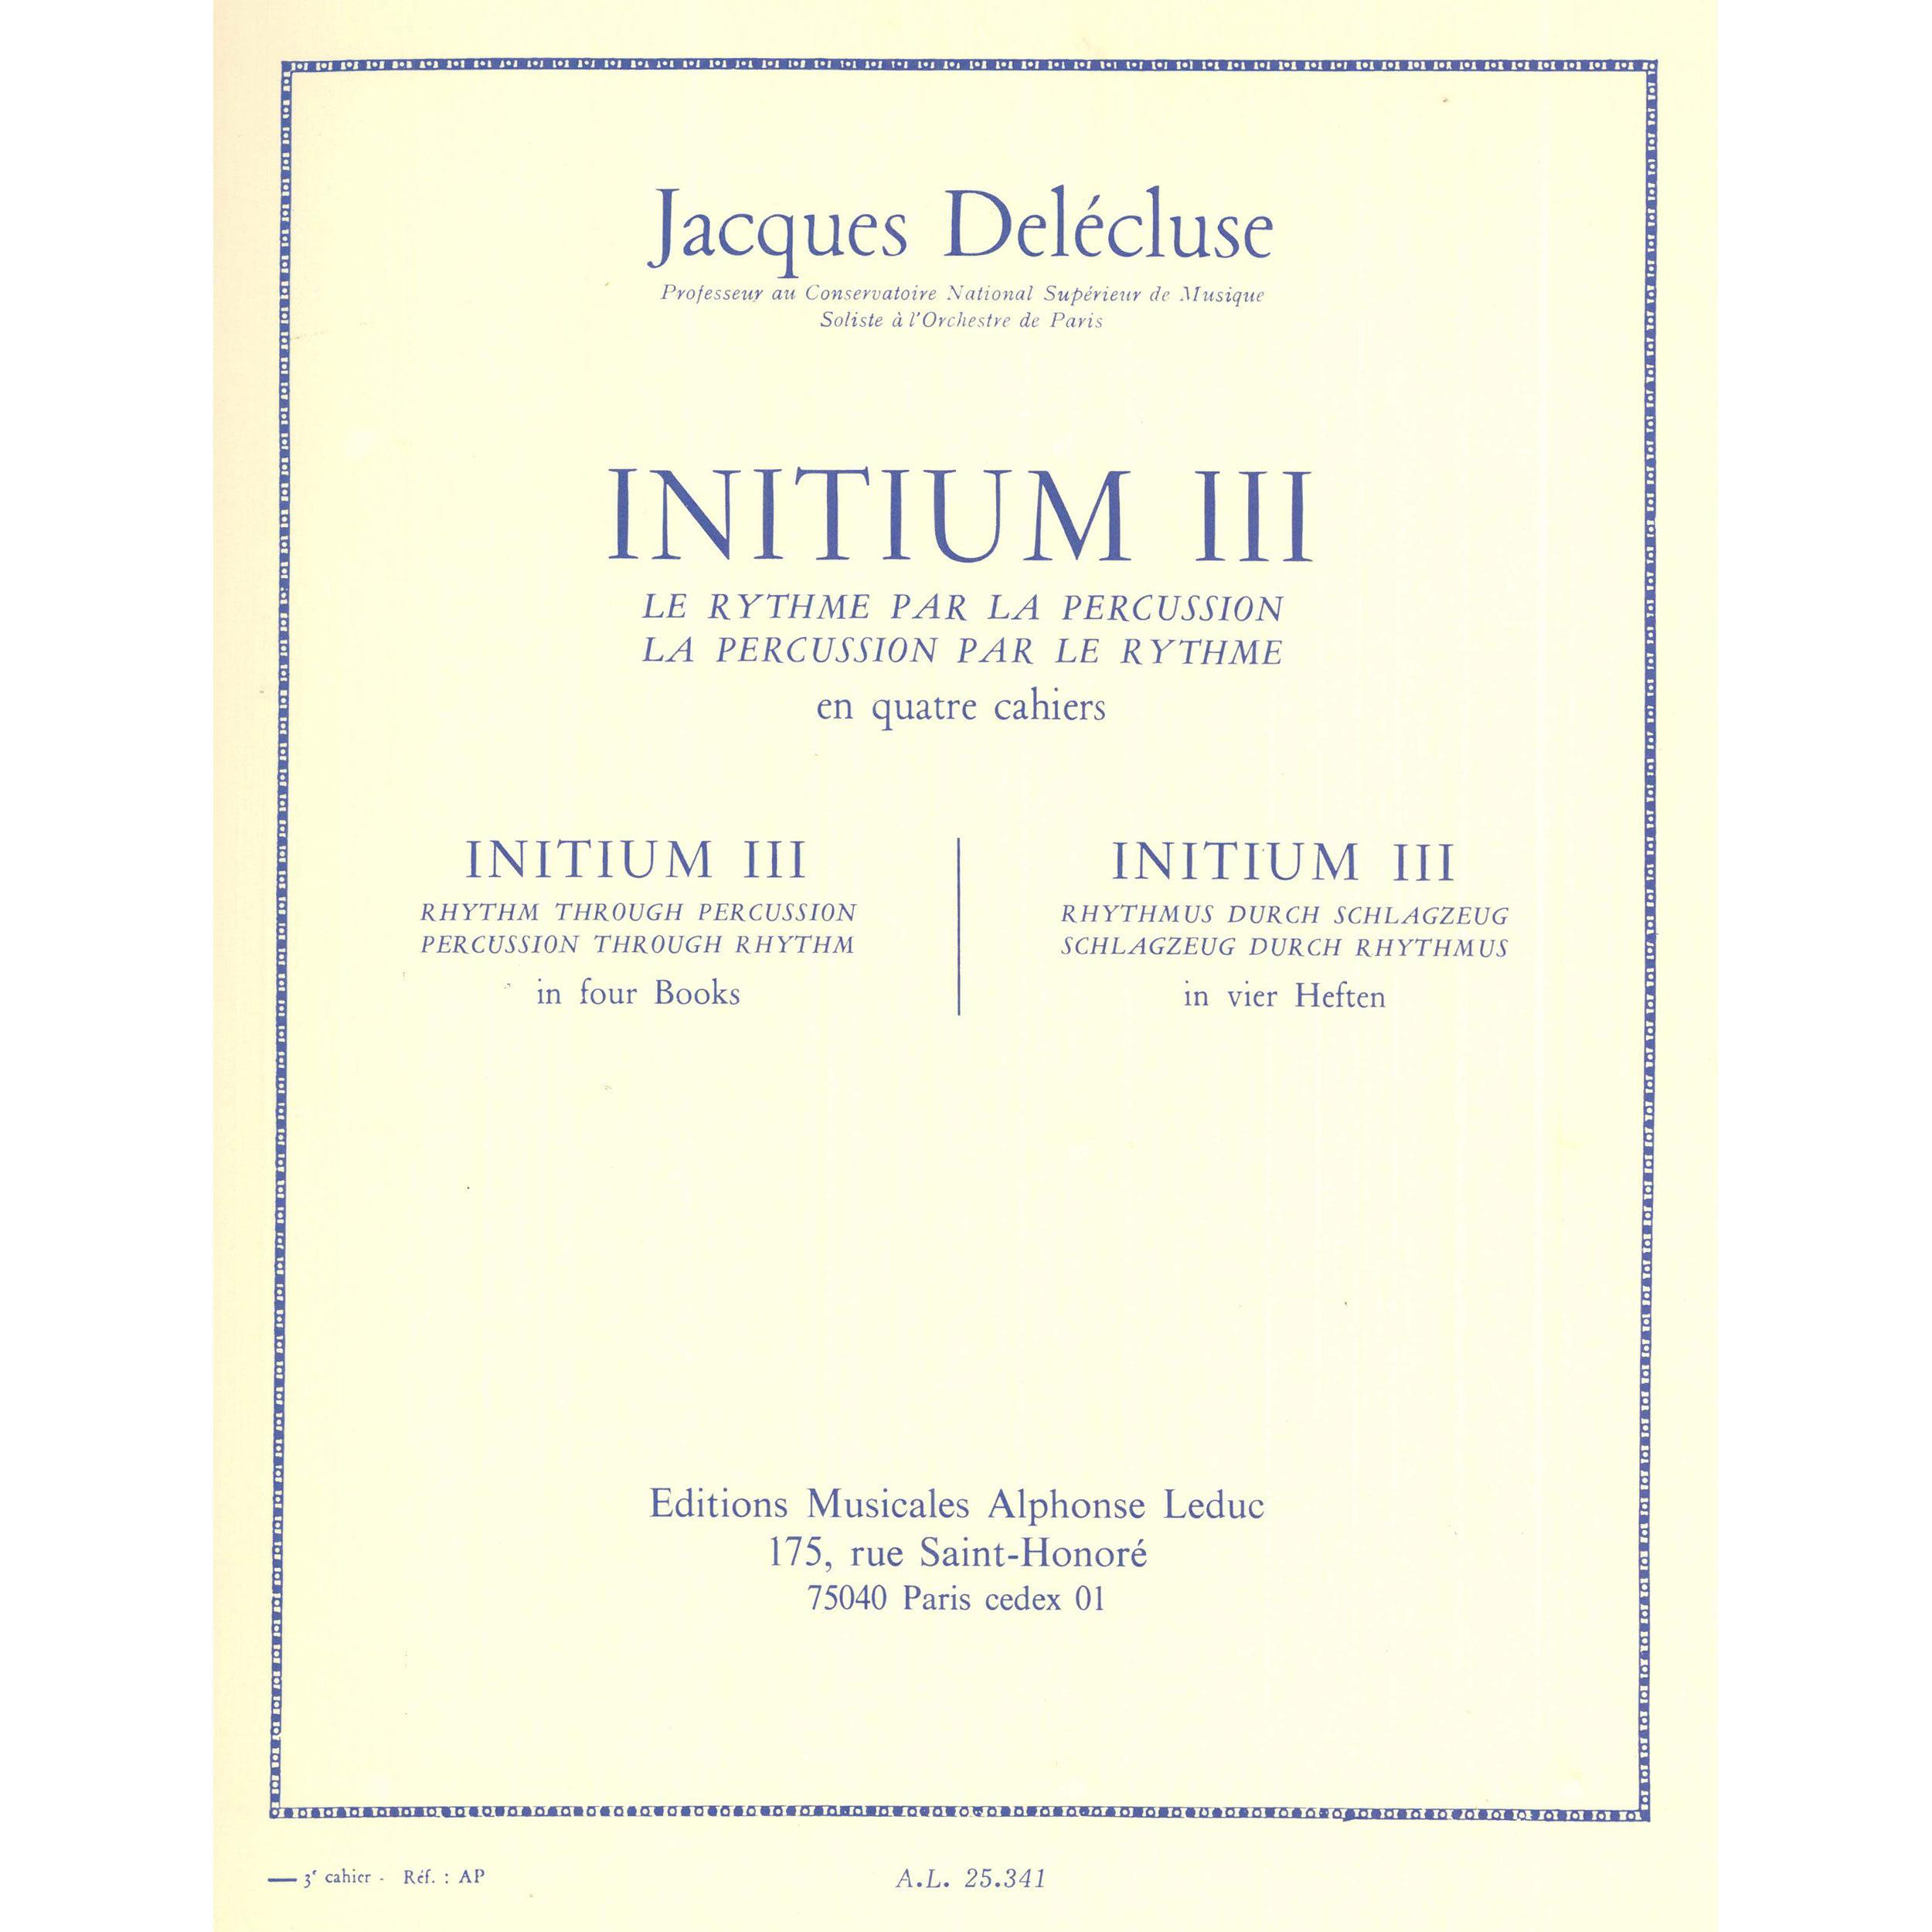 Initium III by Jacques Delecluse